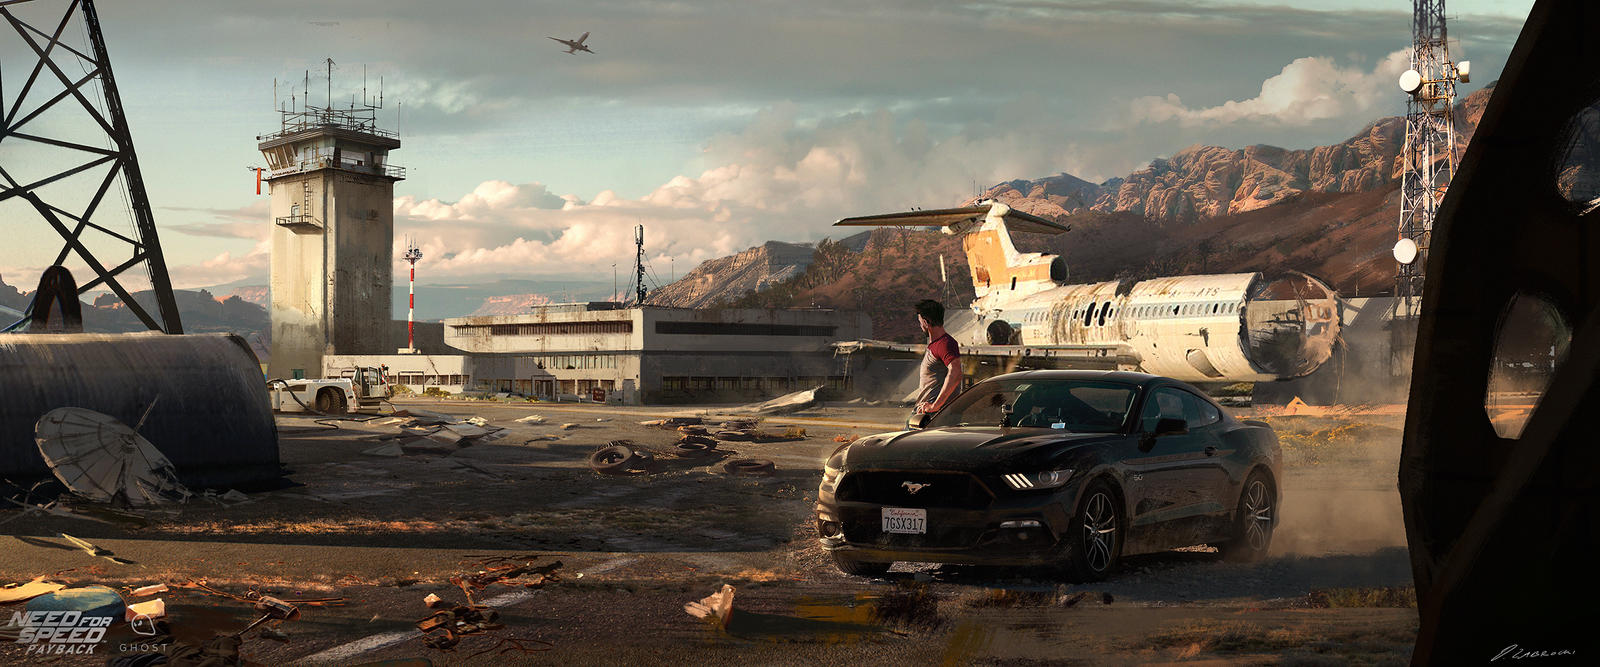 NFS:Payback Airfield Concept by daRoz